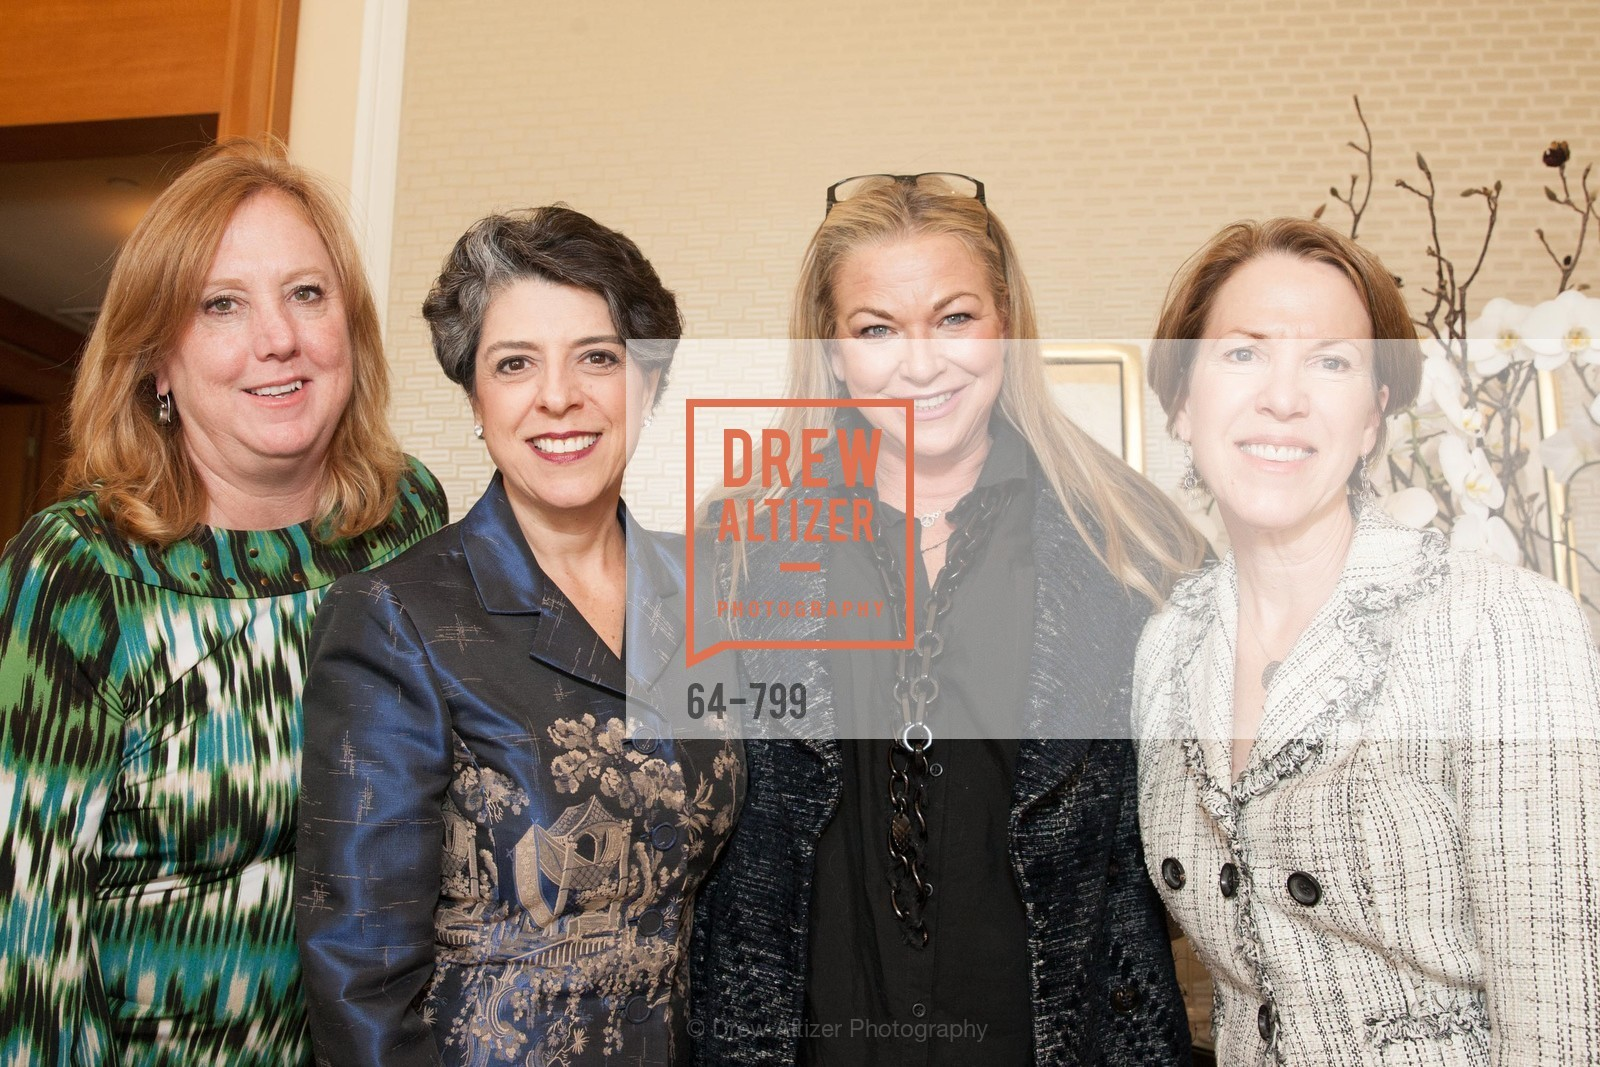 Barbara Bates, Jennifer Glass, Amy Bonetti Price, Elaine Cummings, COMPASSION & CHOICES - Empowerment Luncheon, US, April 24th, 2015,Drew Altizer, Drew Altizer Photography, full-service agency, private events, San Francisco photographer, photographer california